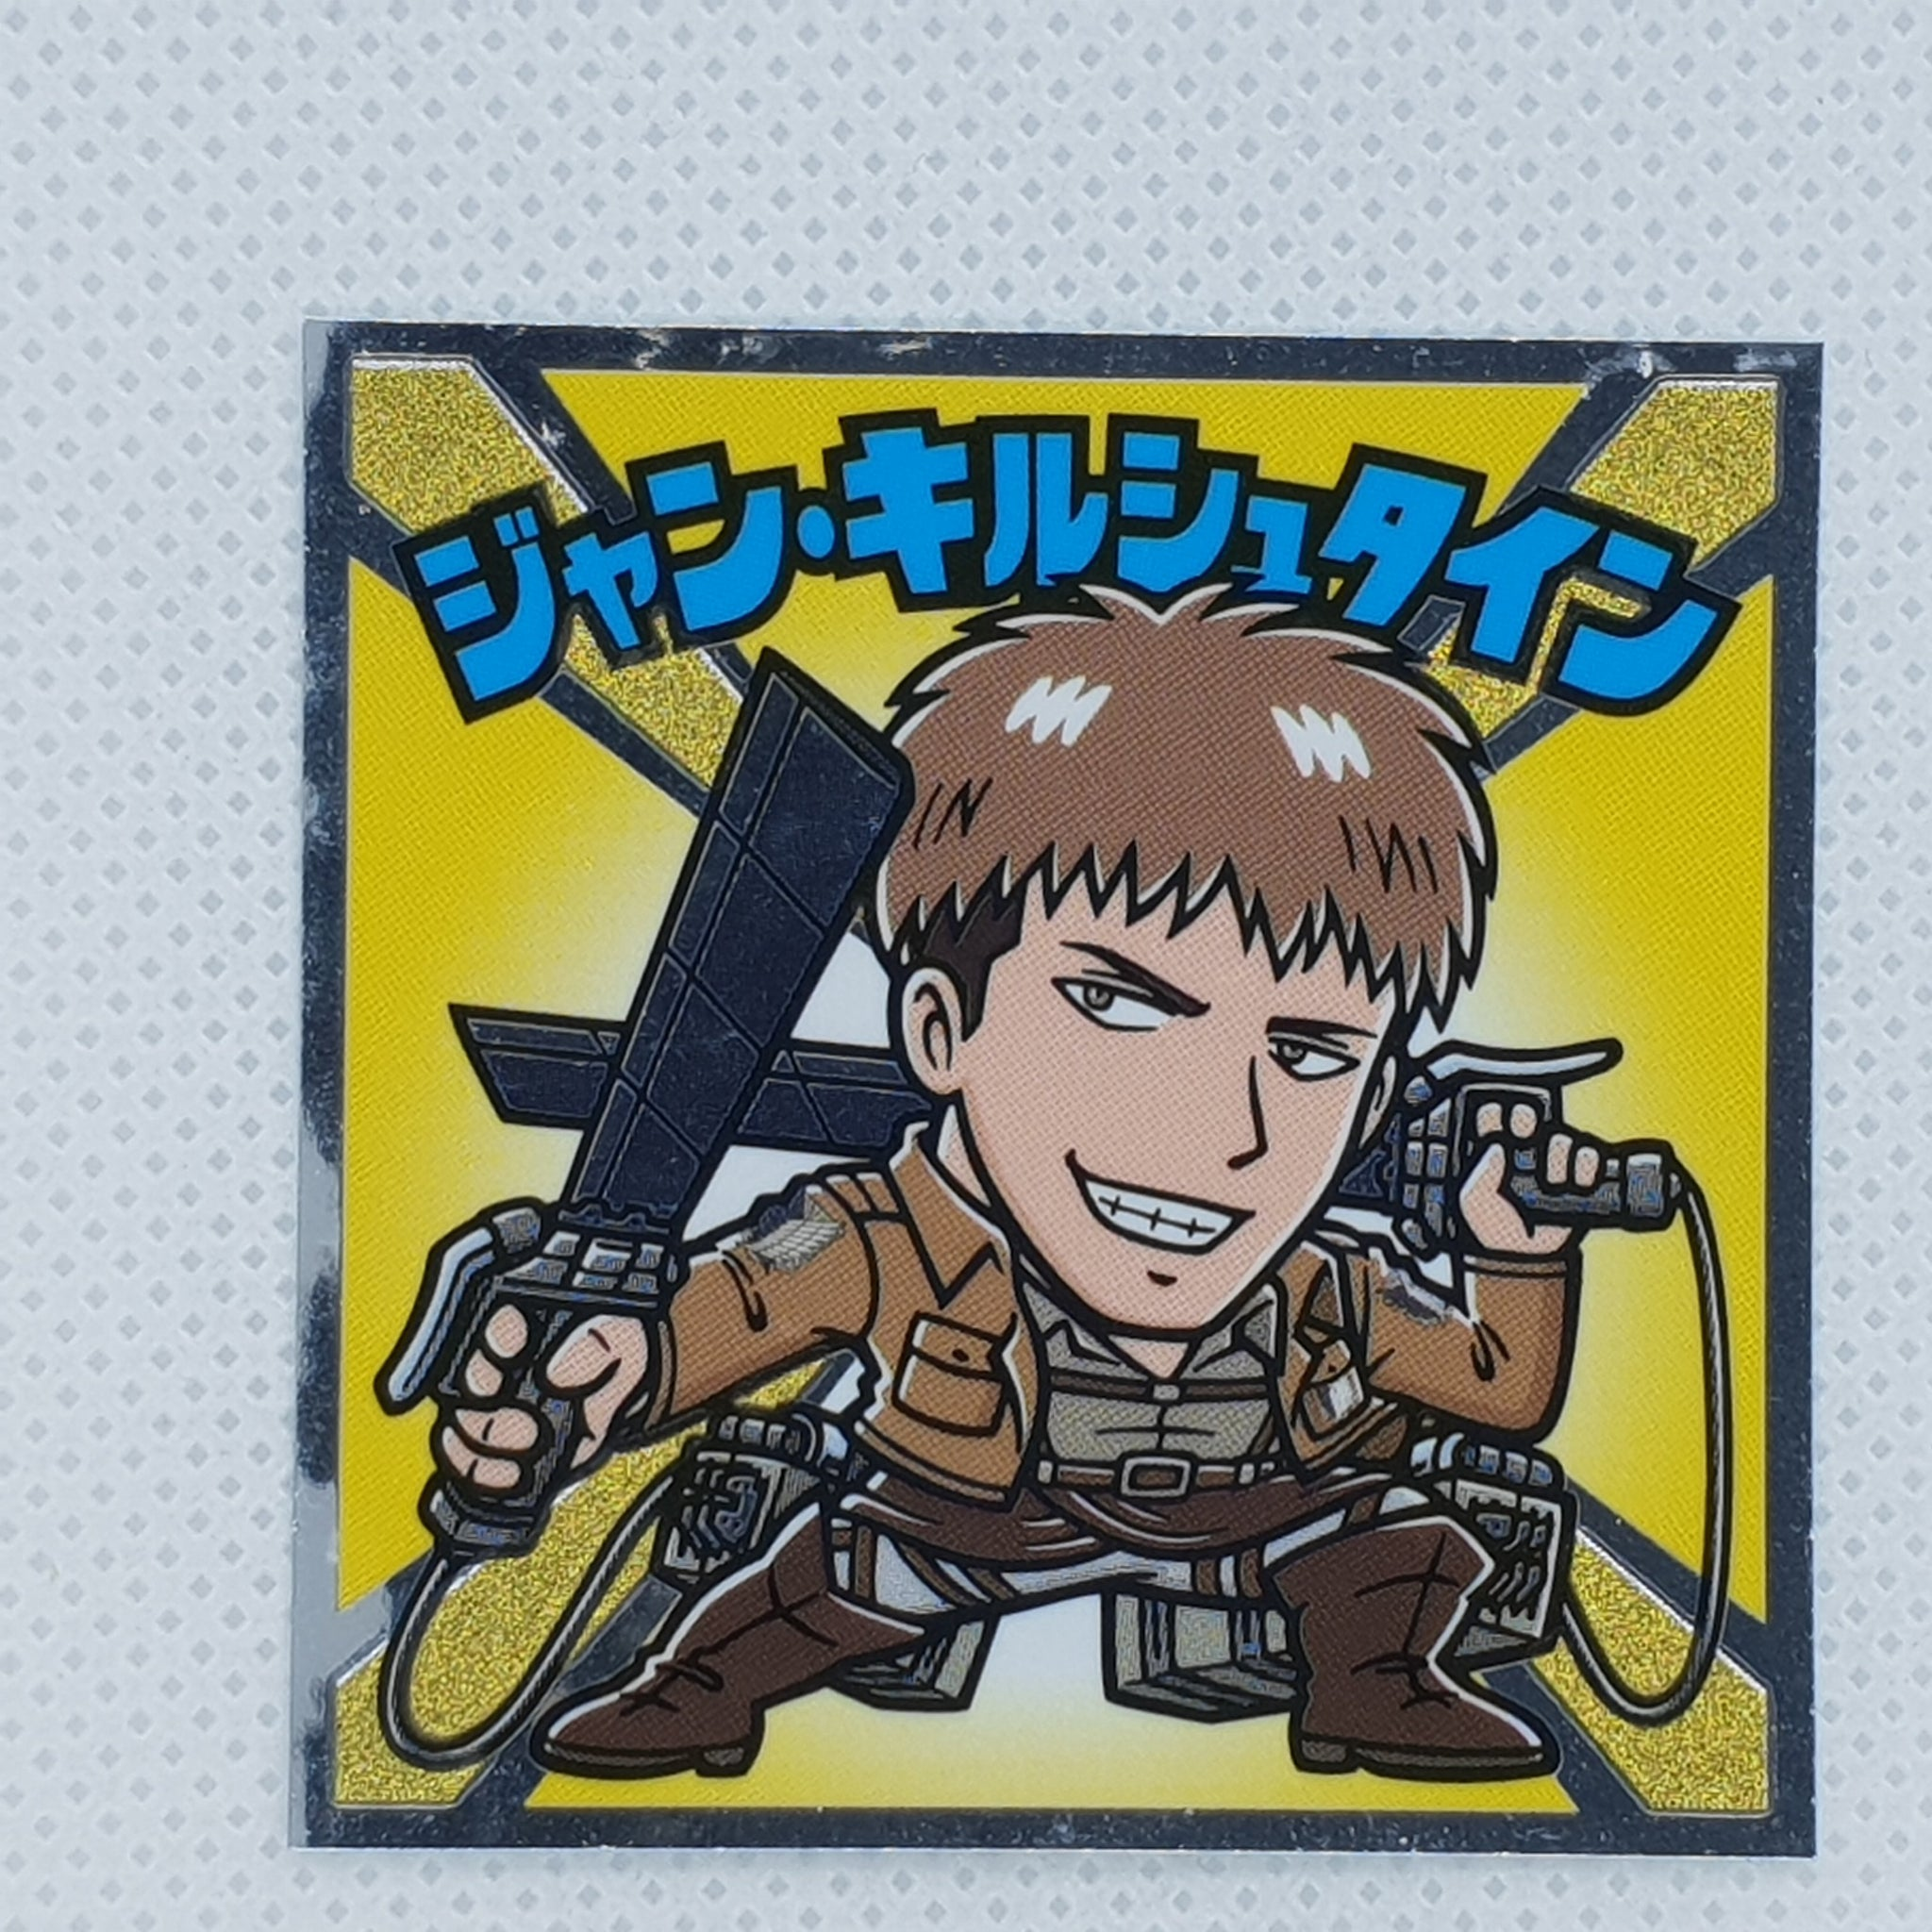 Attack on Titan Bikkuriman Sticker - Jean